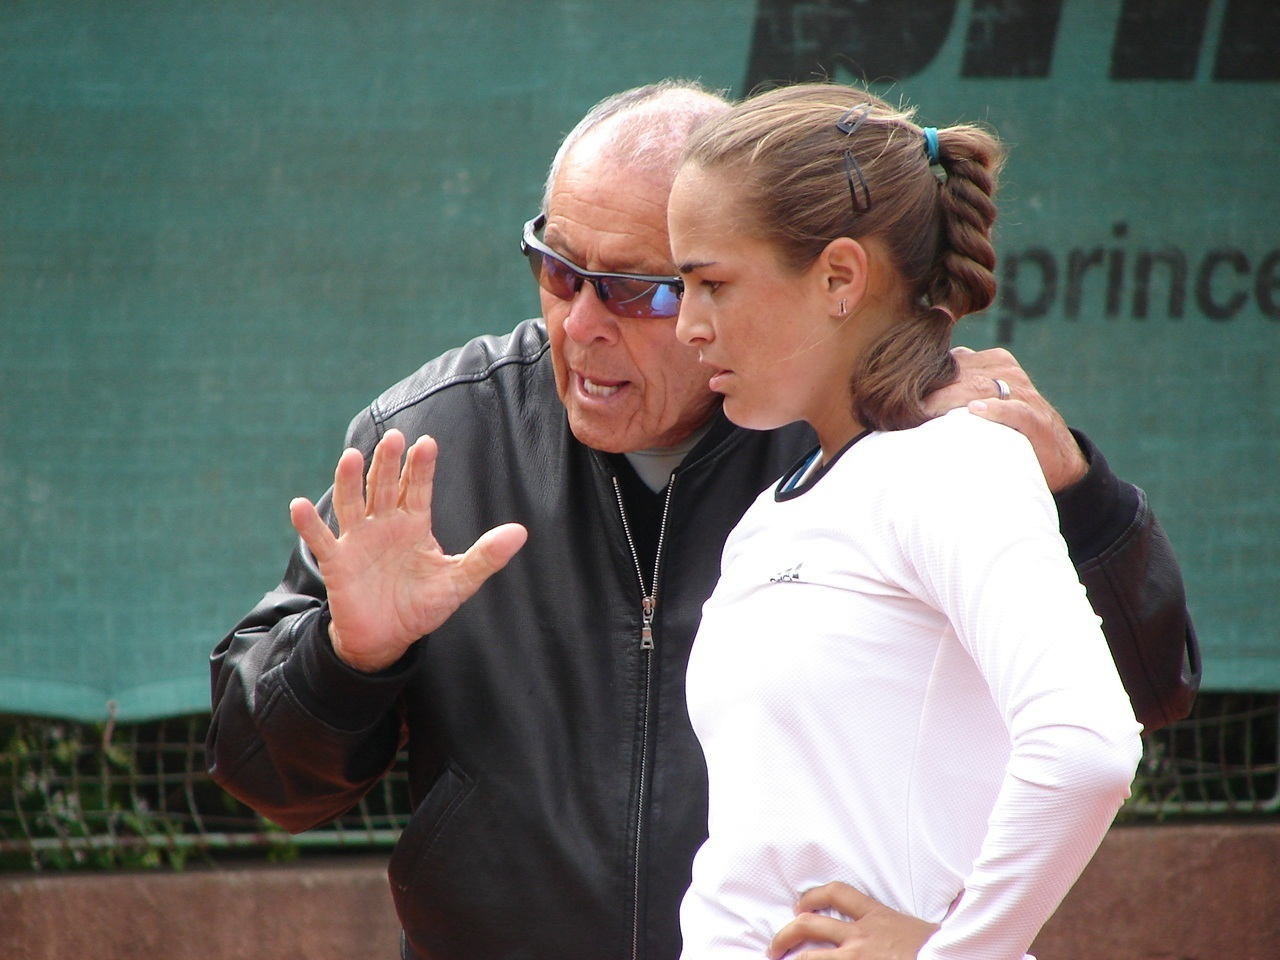 monica-puig-nick-bollettieri-prague-1058756494